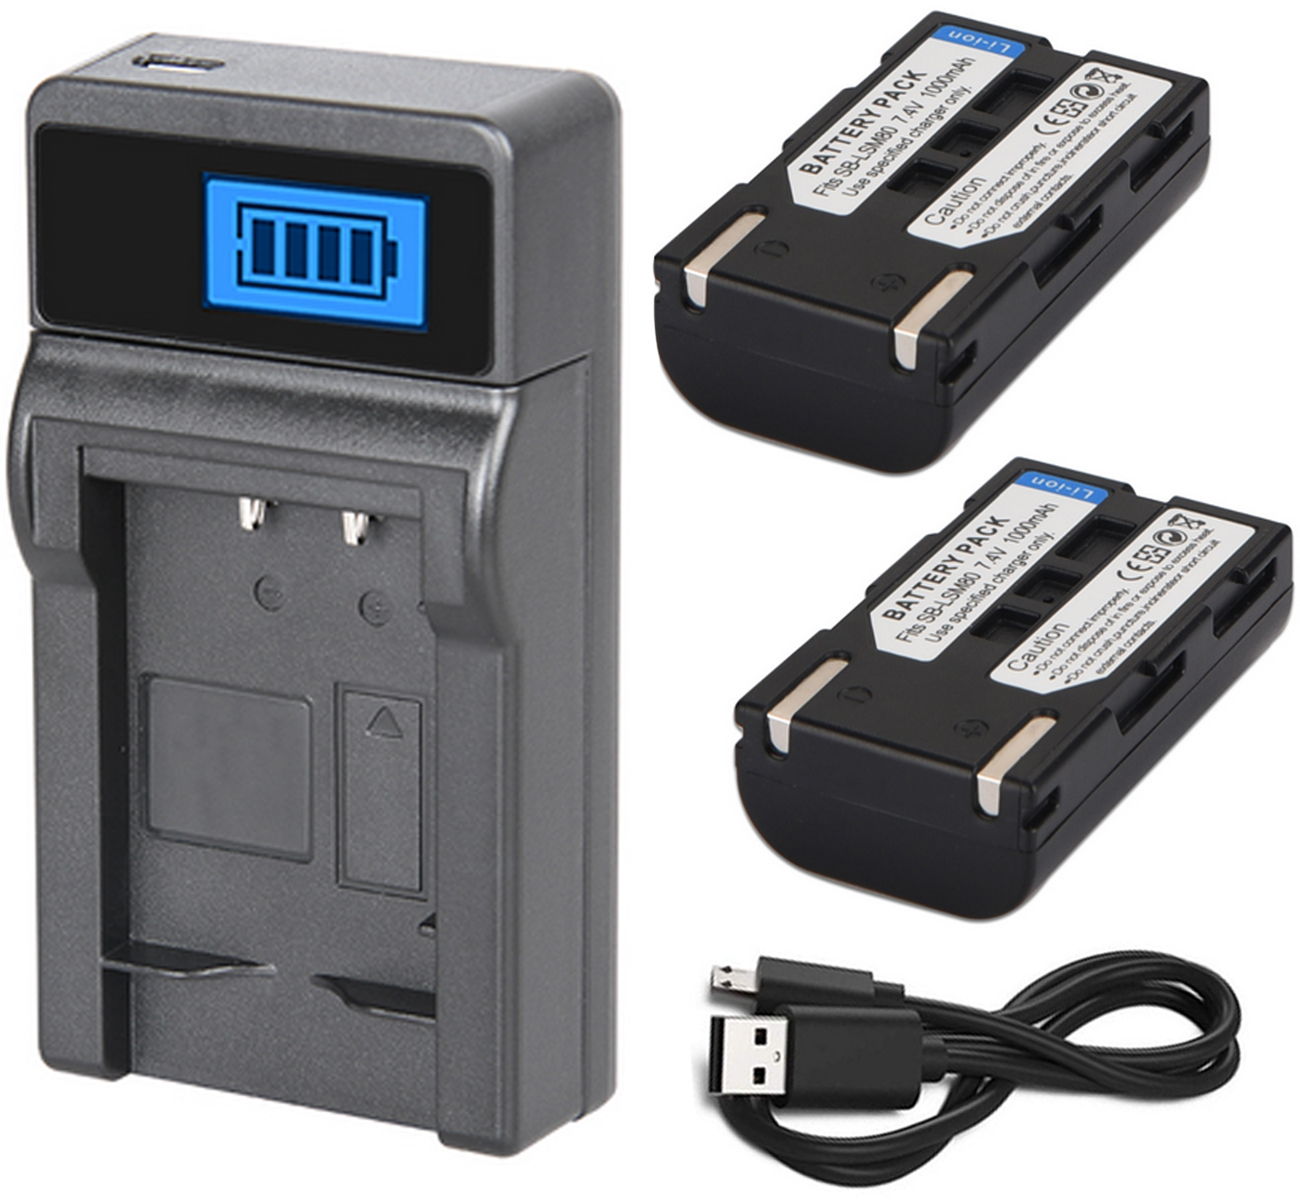 Battery 2-Pack SC-D364 SC-D365 and LCD USB Charger for Samsung SC-D362 SC-D363 SC-D366 Digital Camcorder